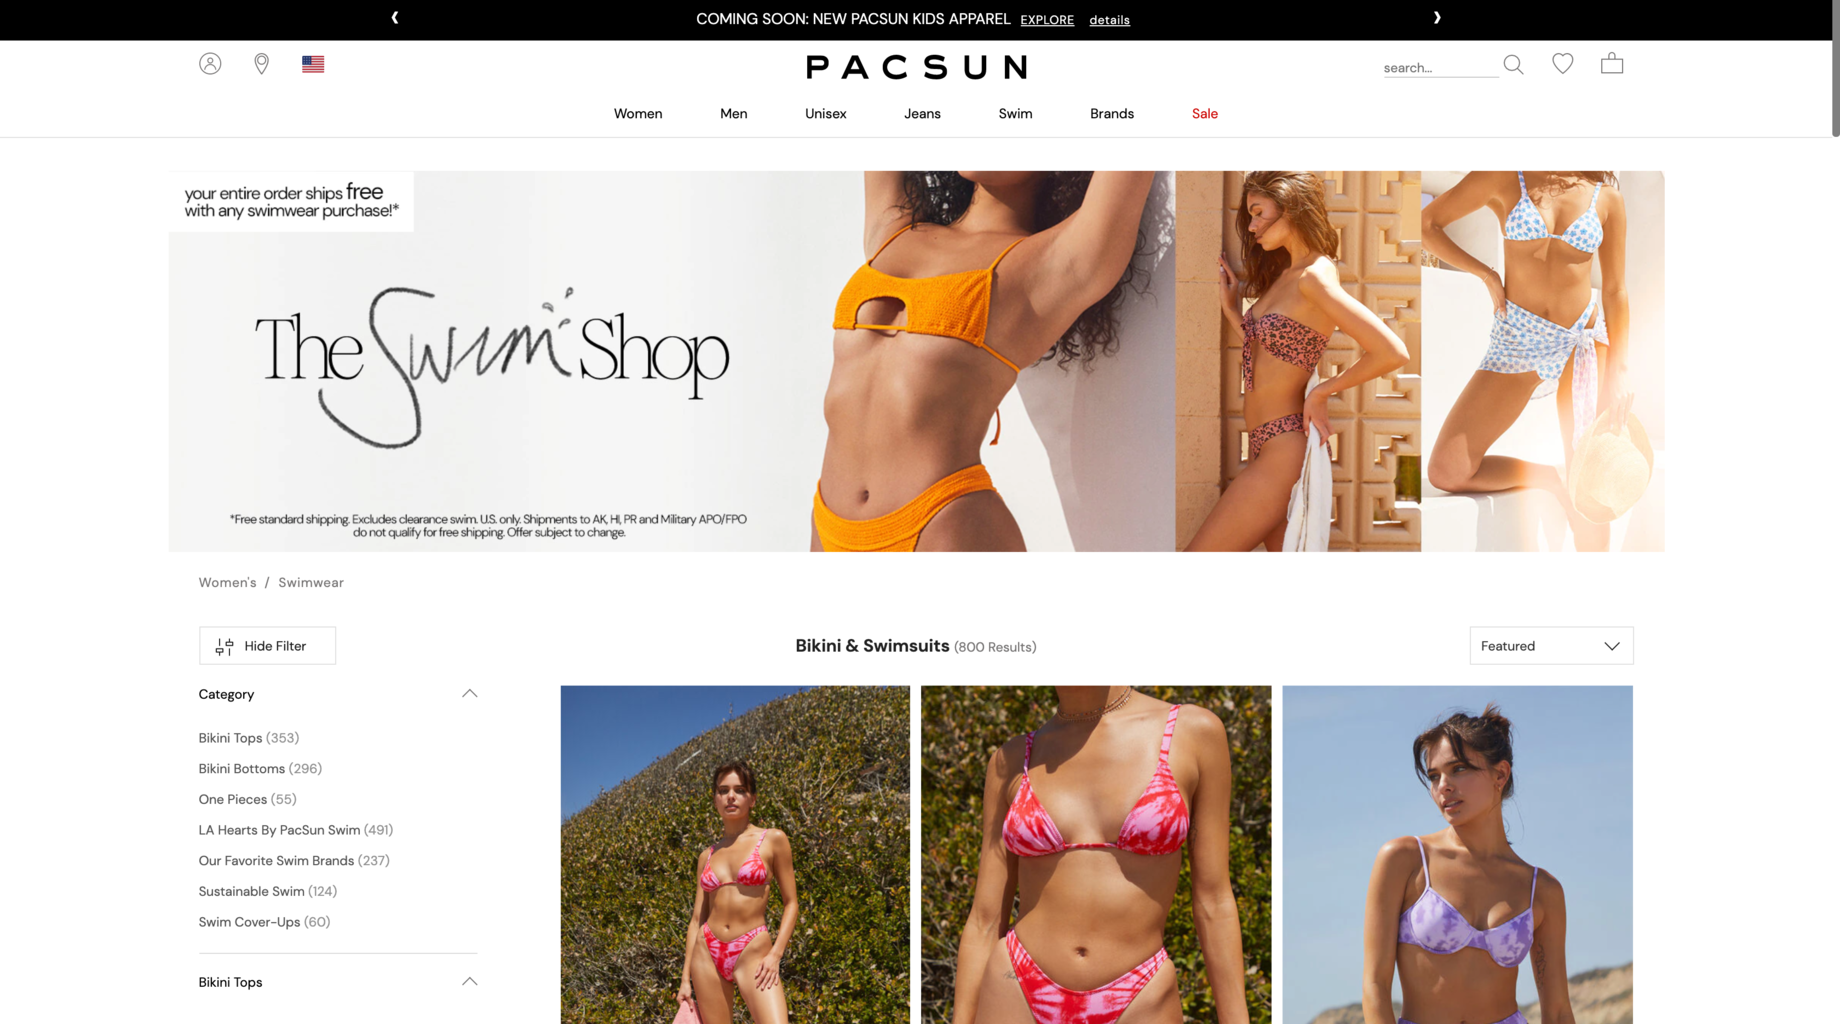 Photo from PacSun